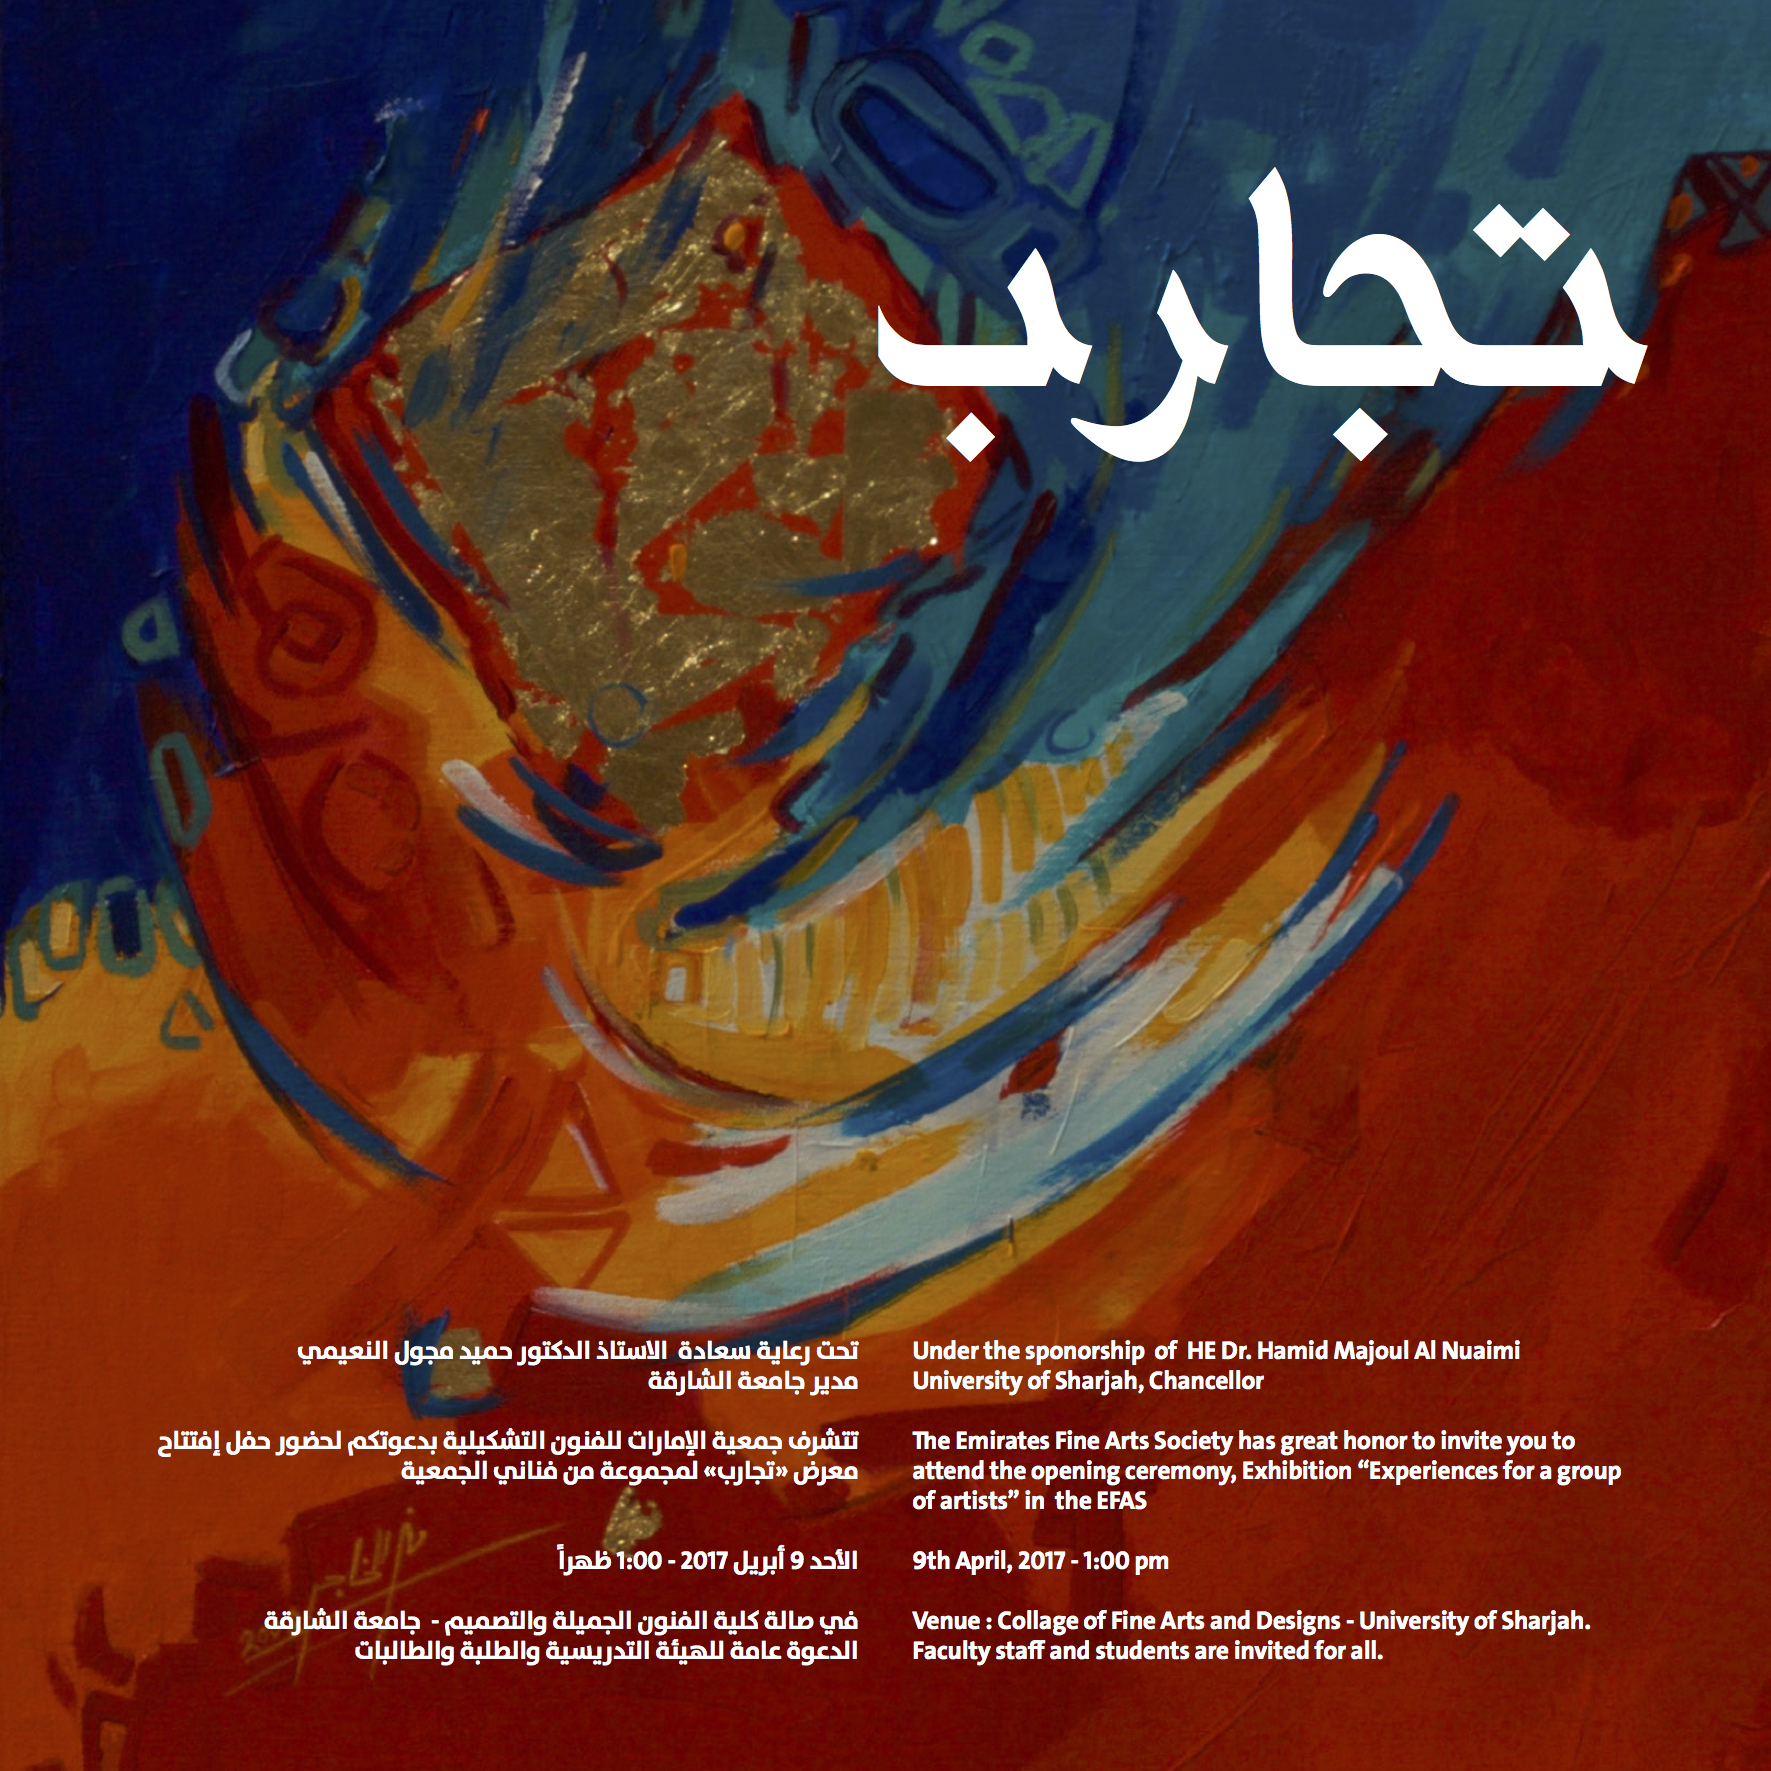 Emirates Fine Arts Exhibition Experiments the experiences of the University of Sharjah